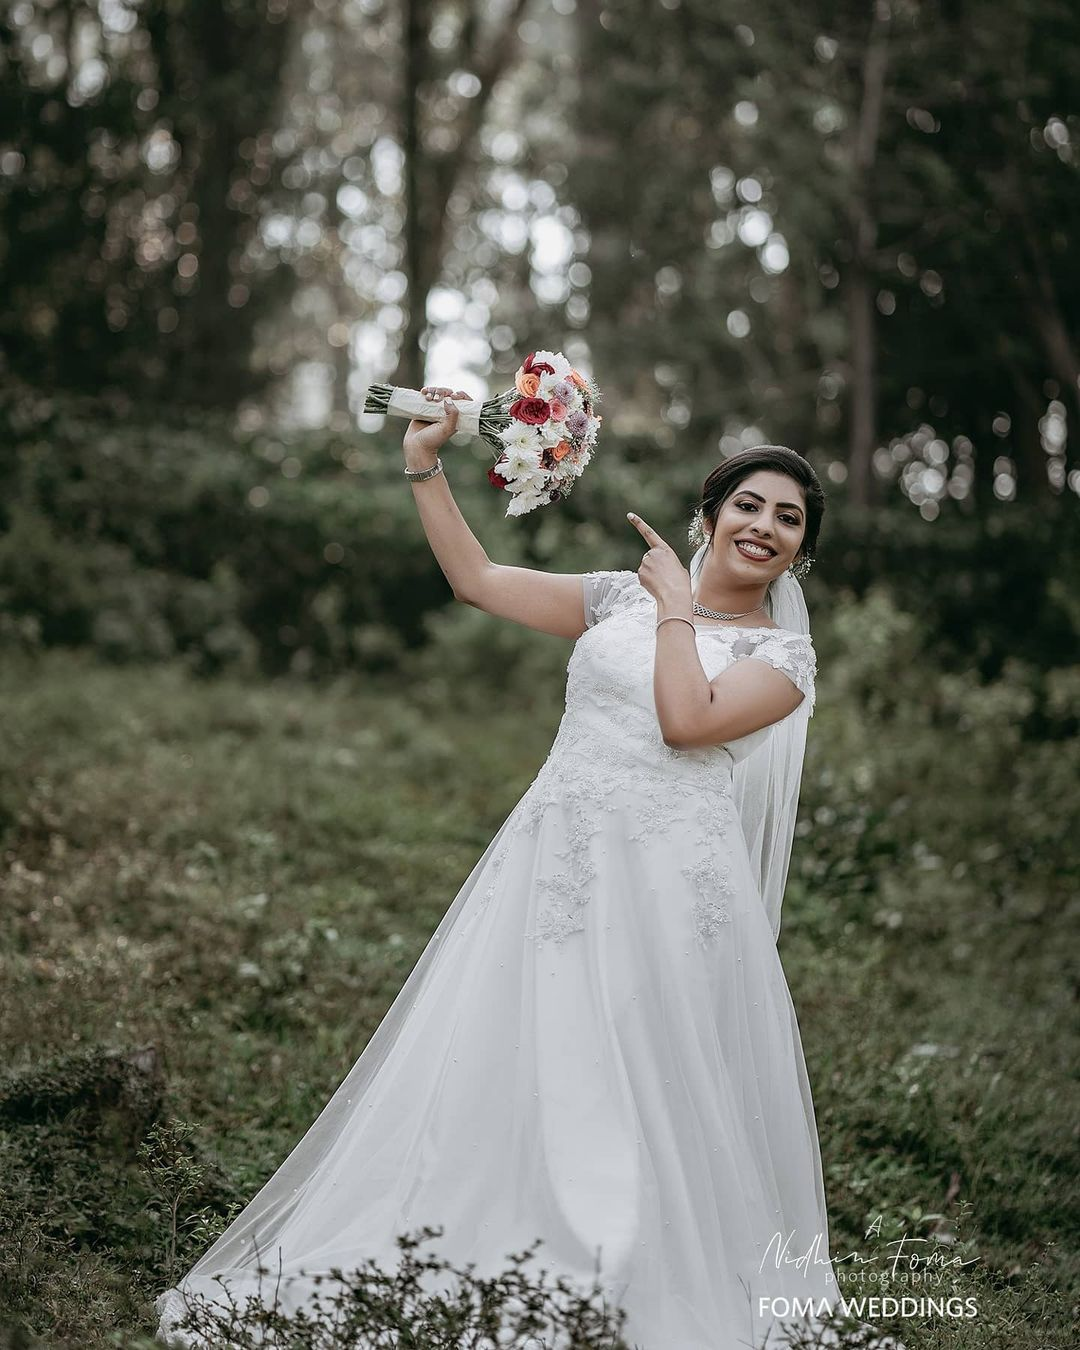 1 wedding photography bride by nidhin foma